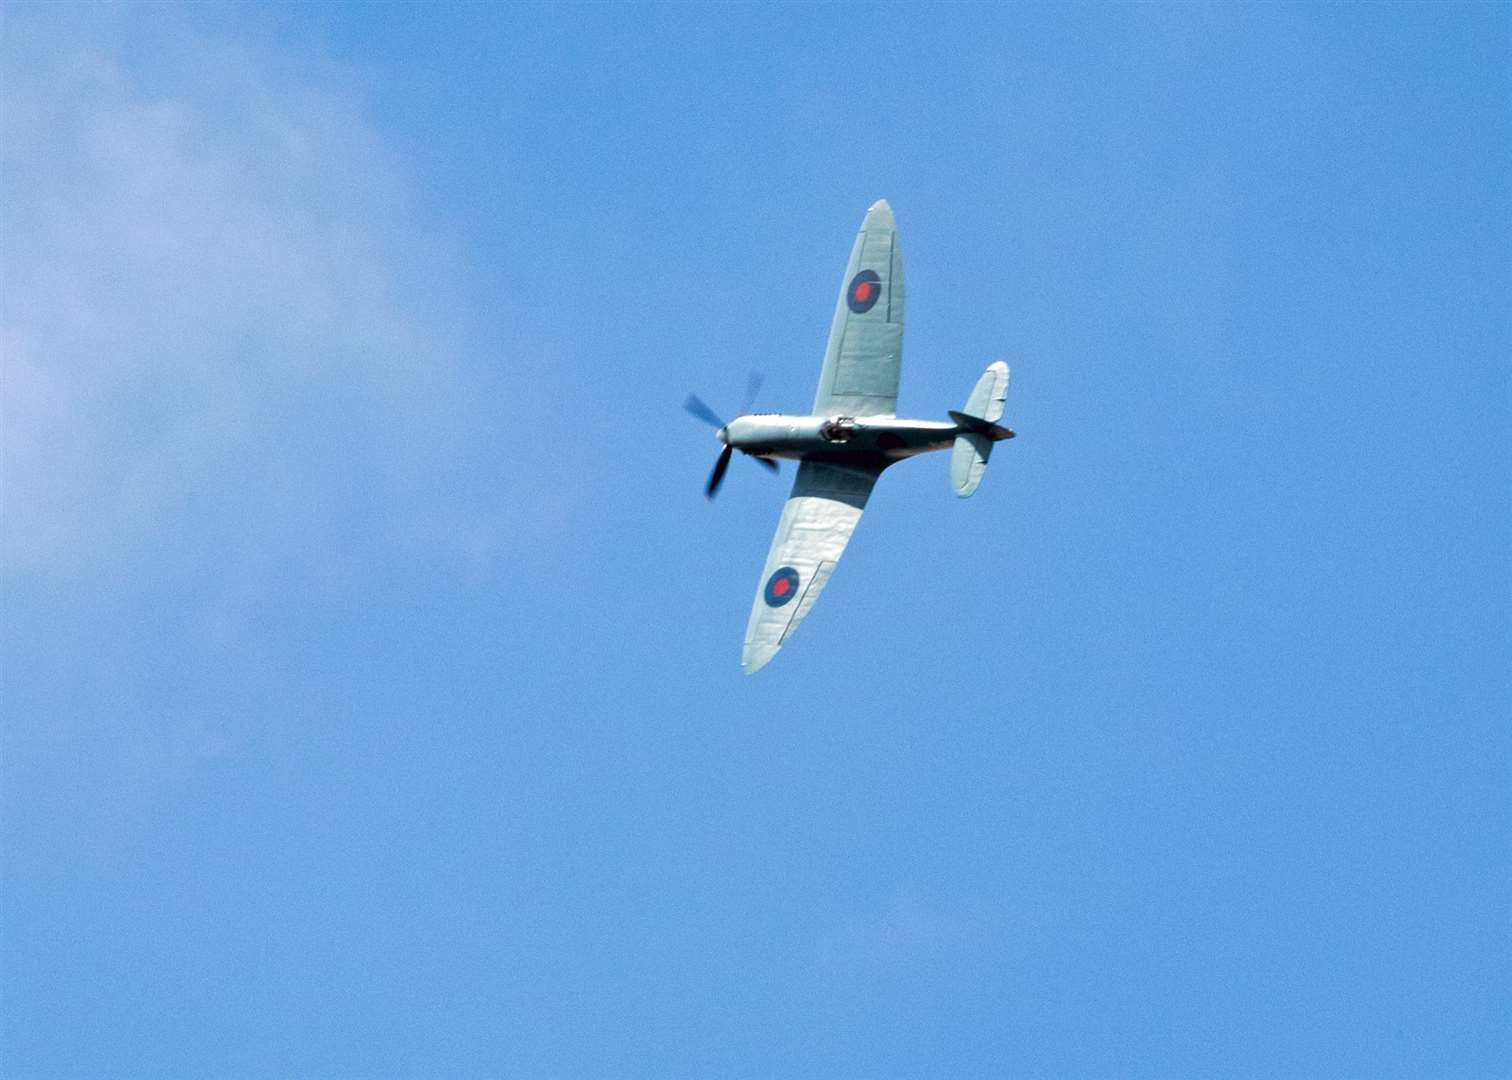 The plane flew from Imperial War Museum, Duxford. Picture: Philip Fuller (3452246)